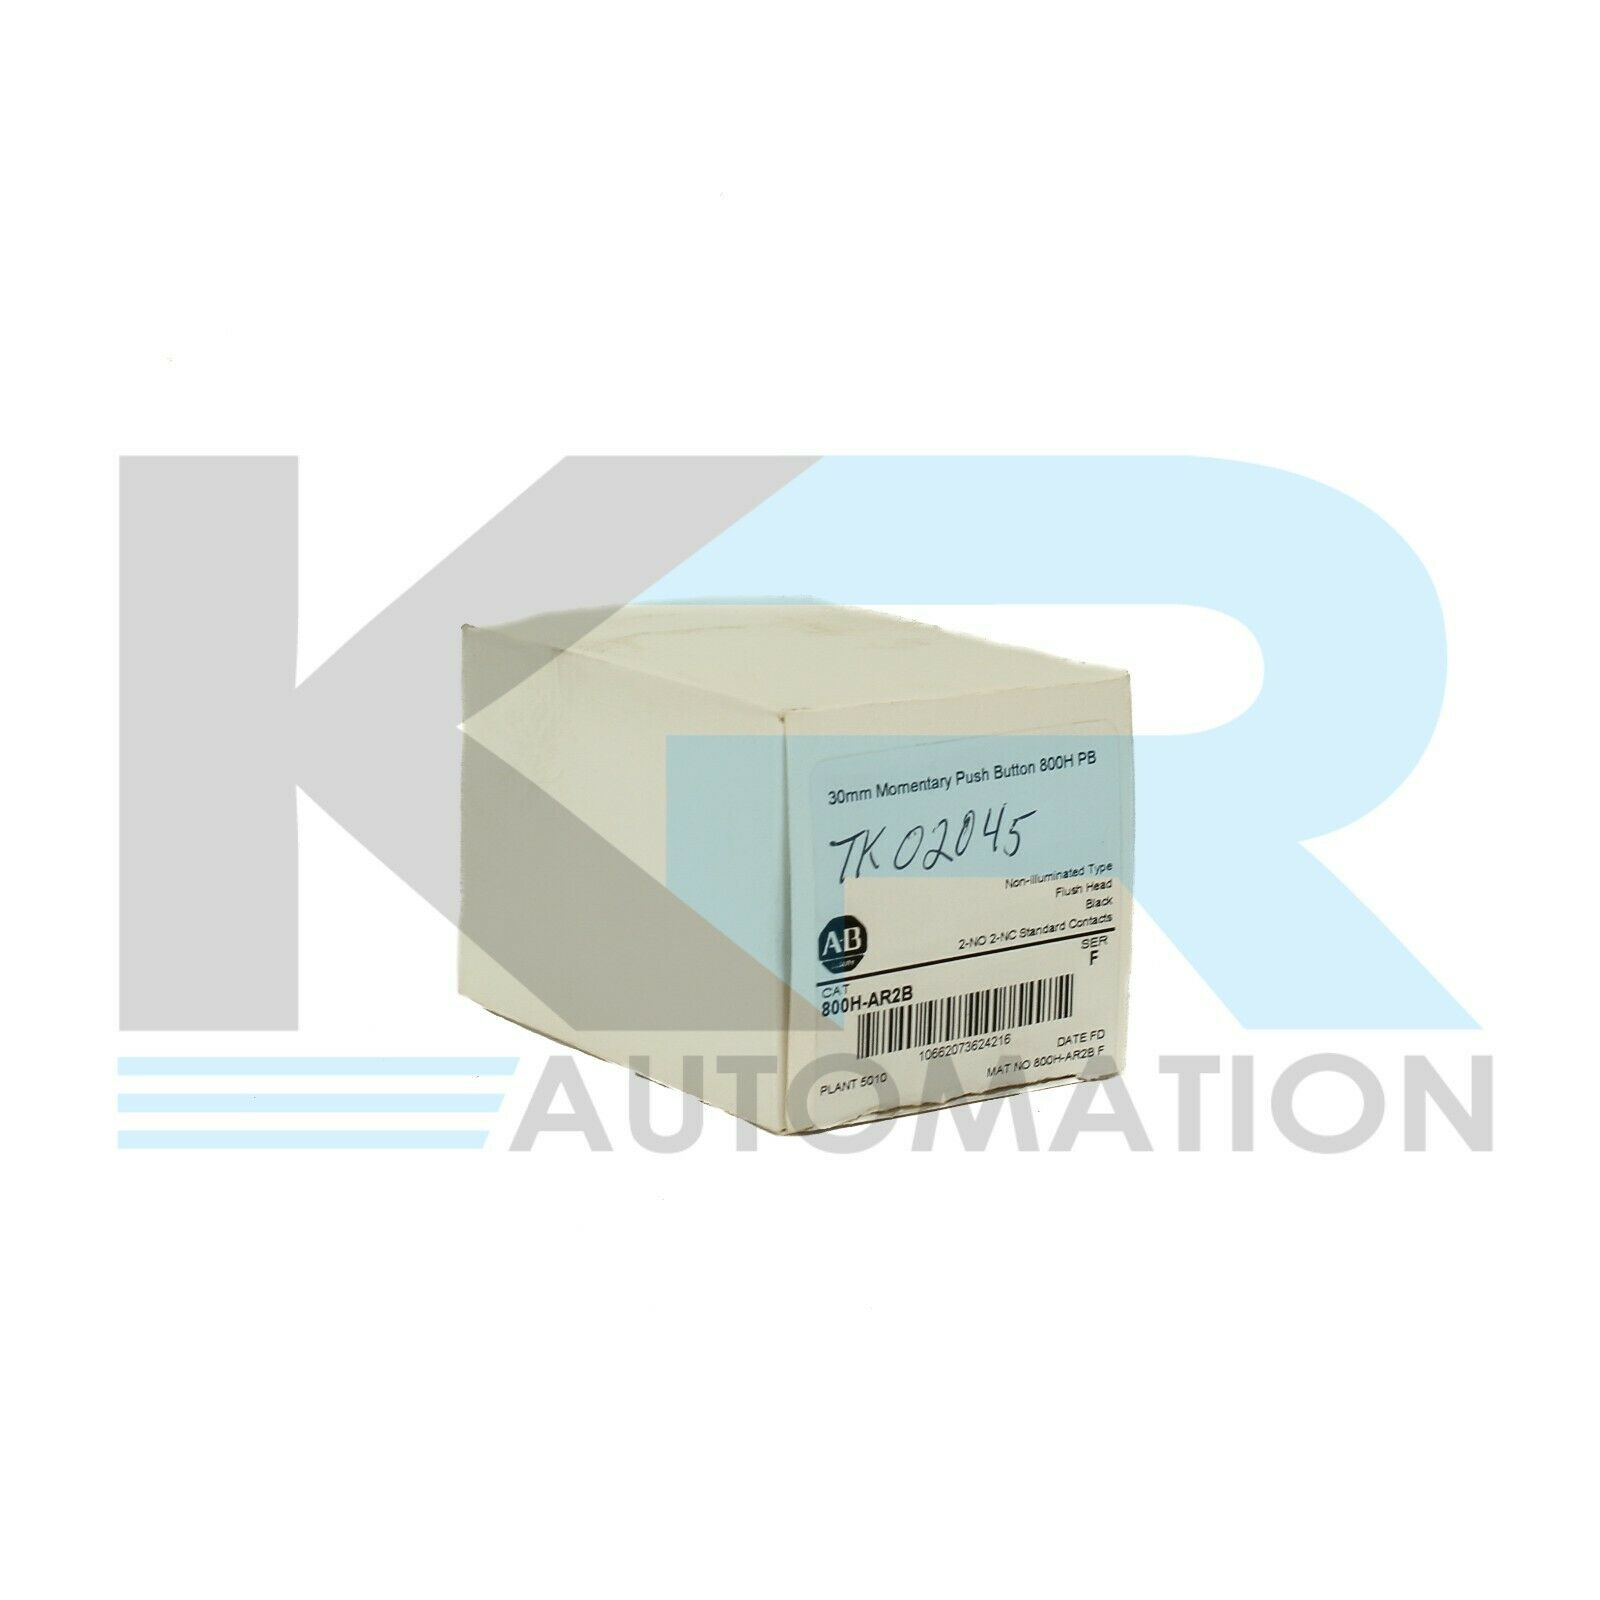 NEW Allen Bradley 800H-AR2B /F Non-Illuminated Black Push Button Flush Head